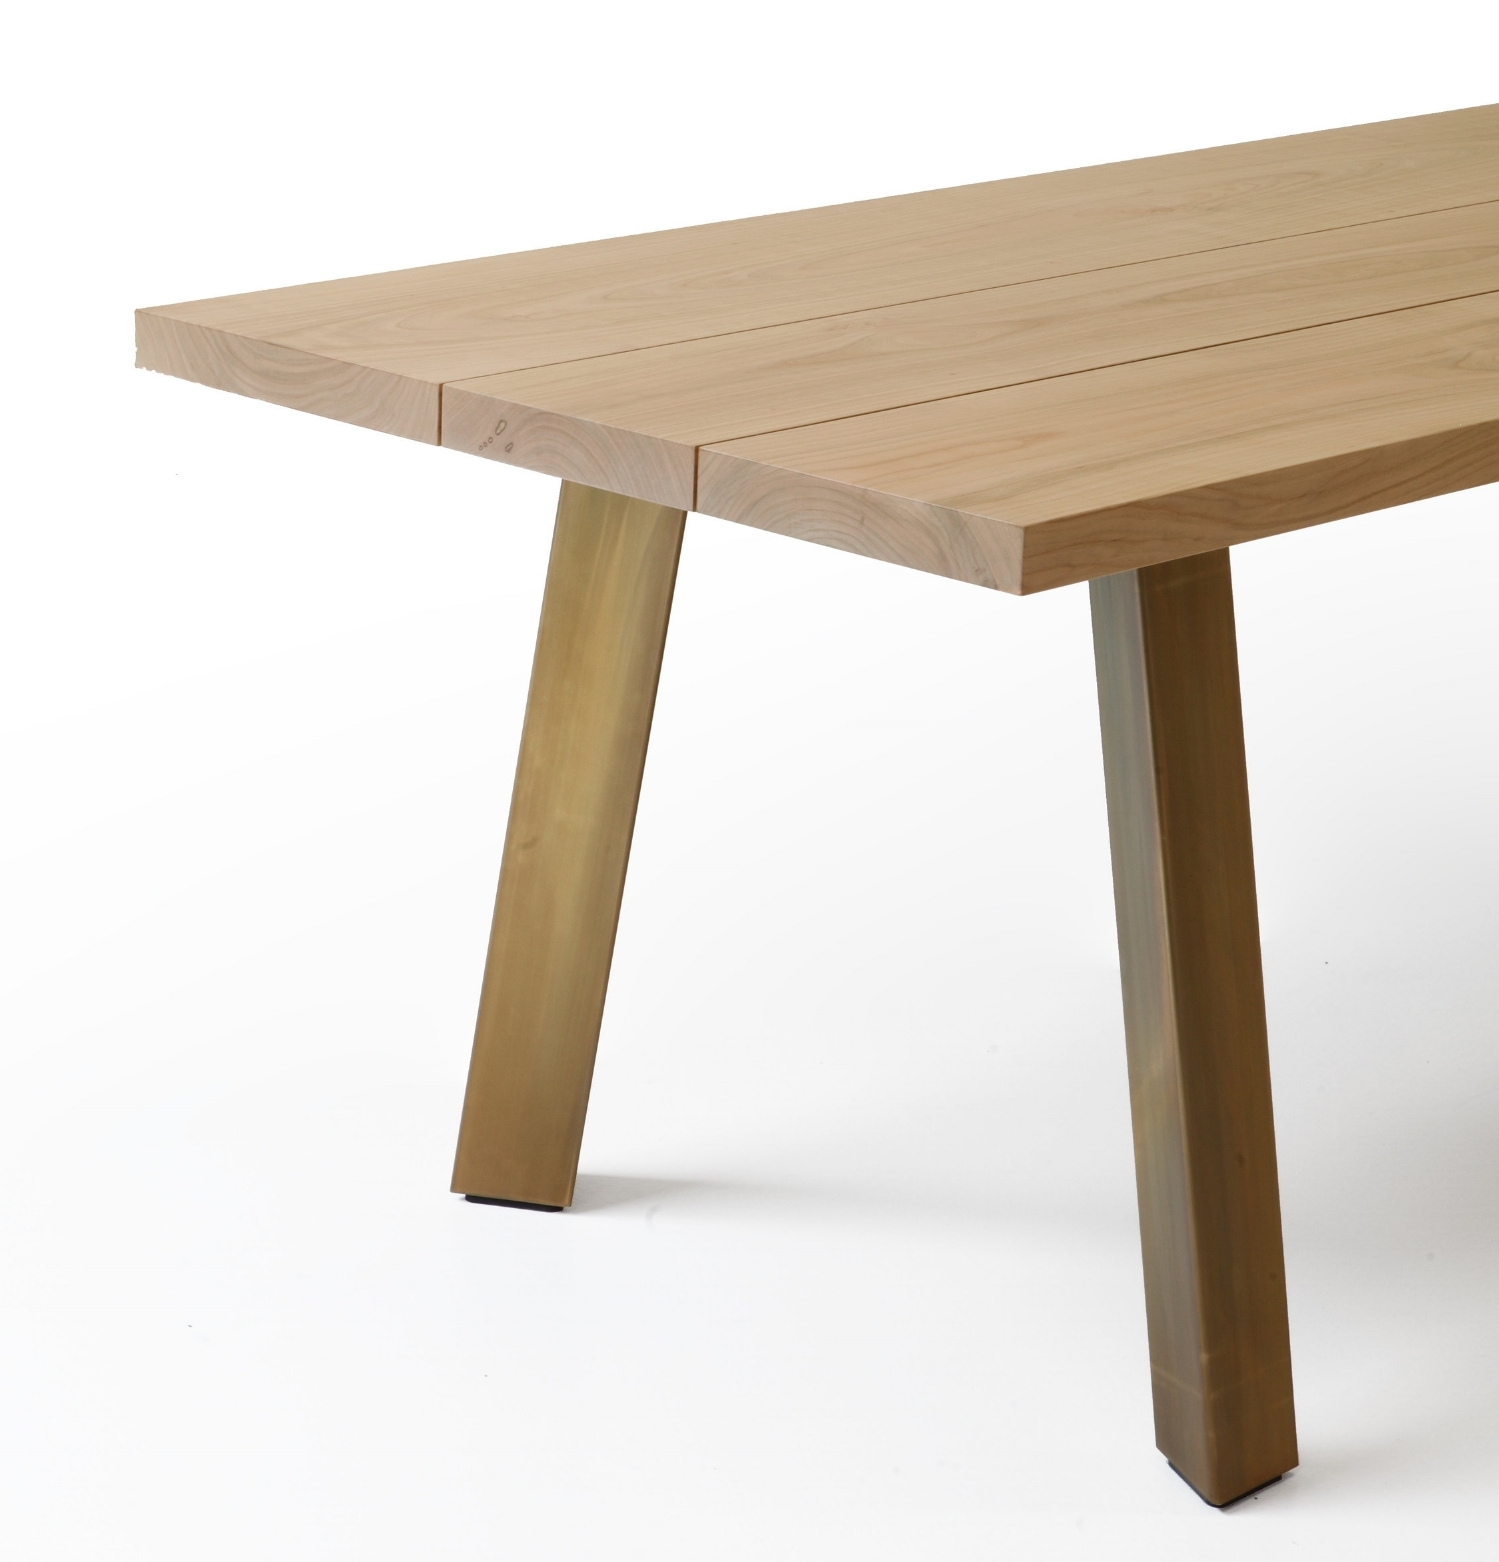 The Ryoba table by Piero Lissoni for Porro pays homage to natural materials and the beauty of imperfection.